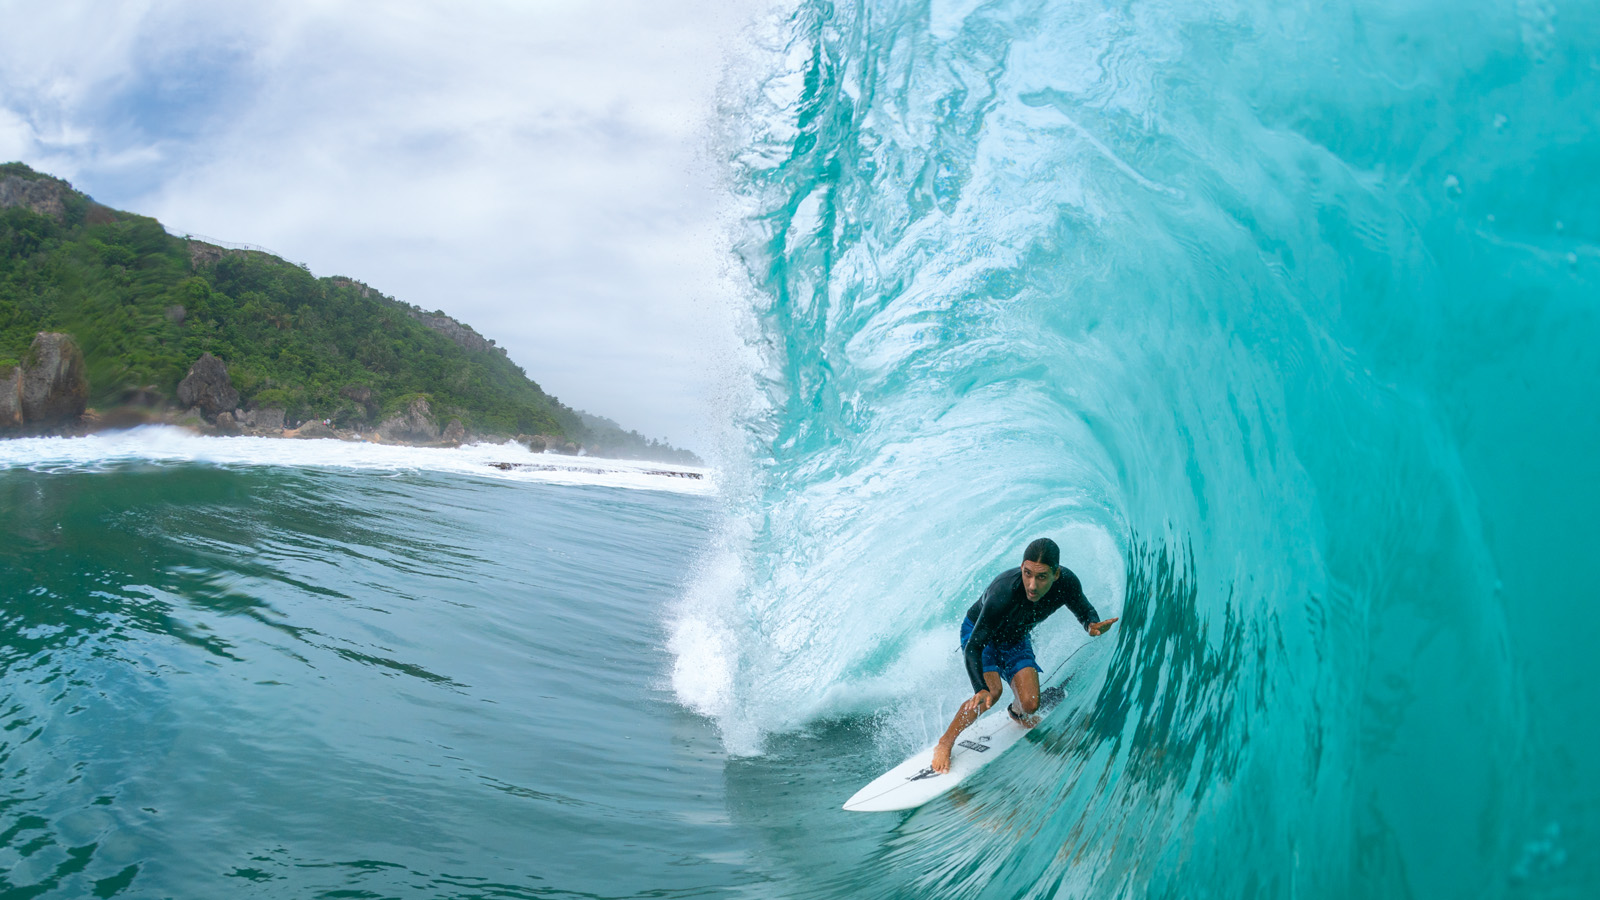 Patagonia SS21 Men's Surf Apparel Preview